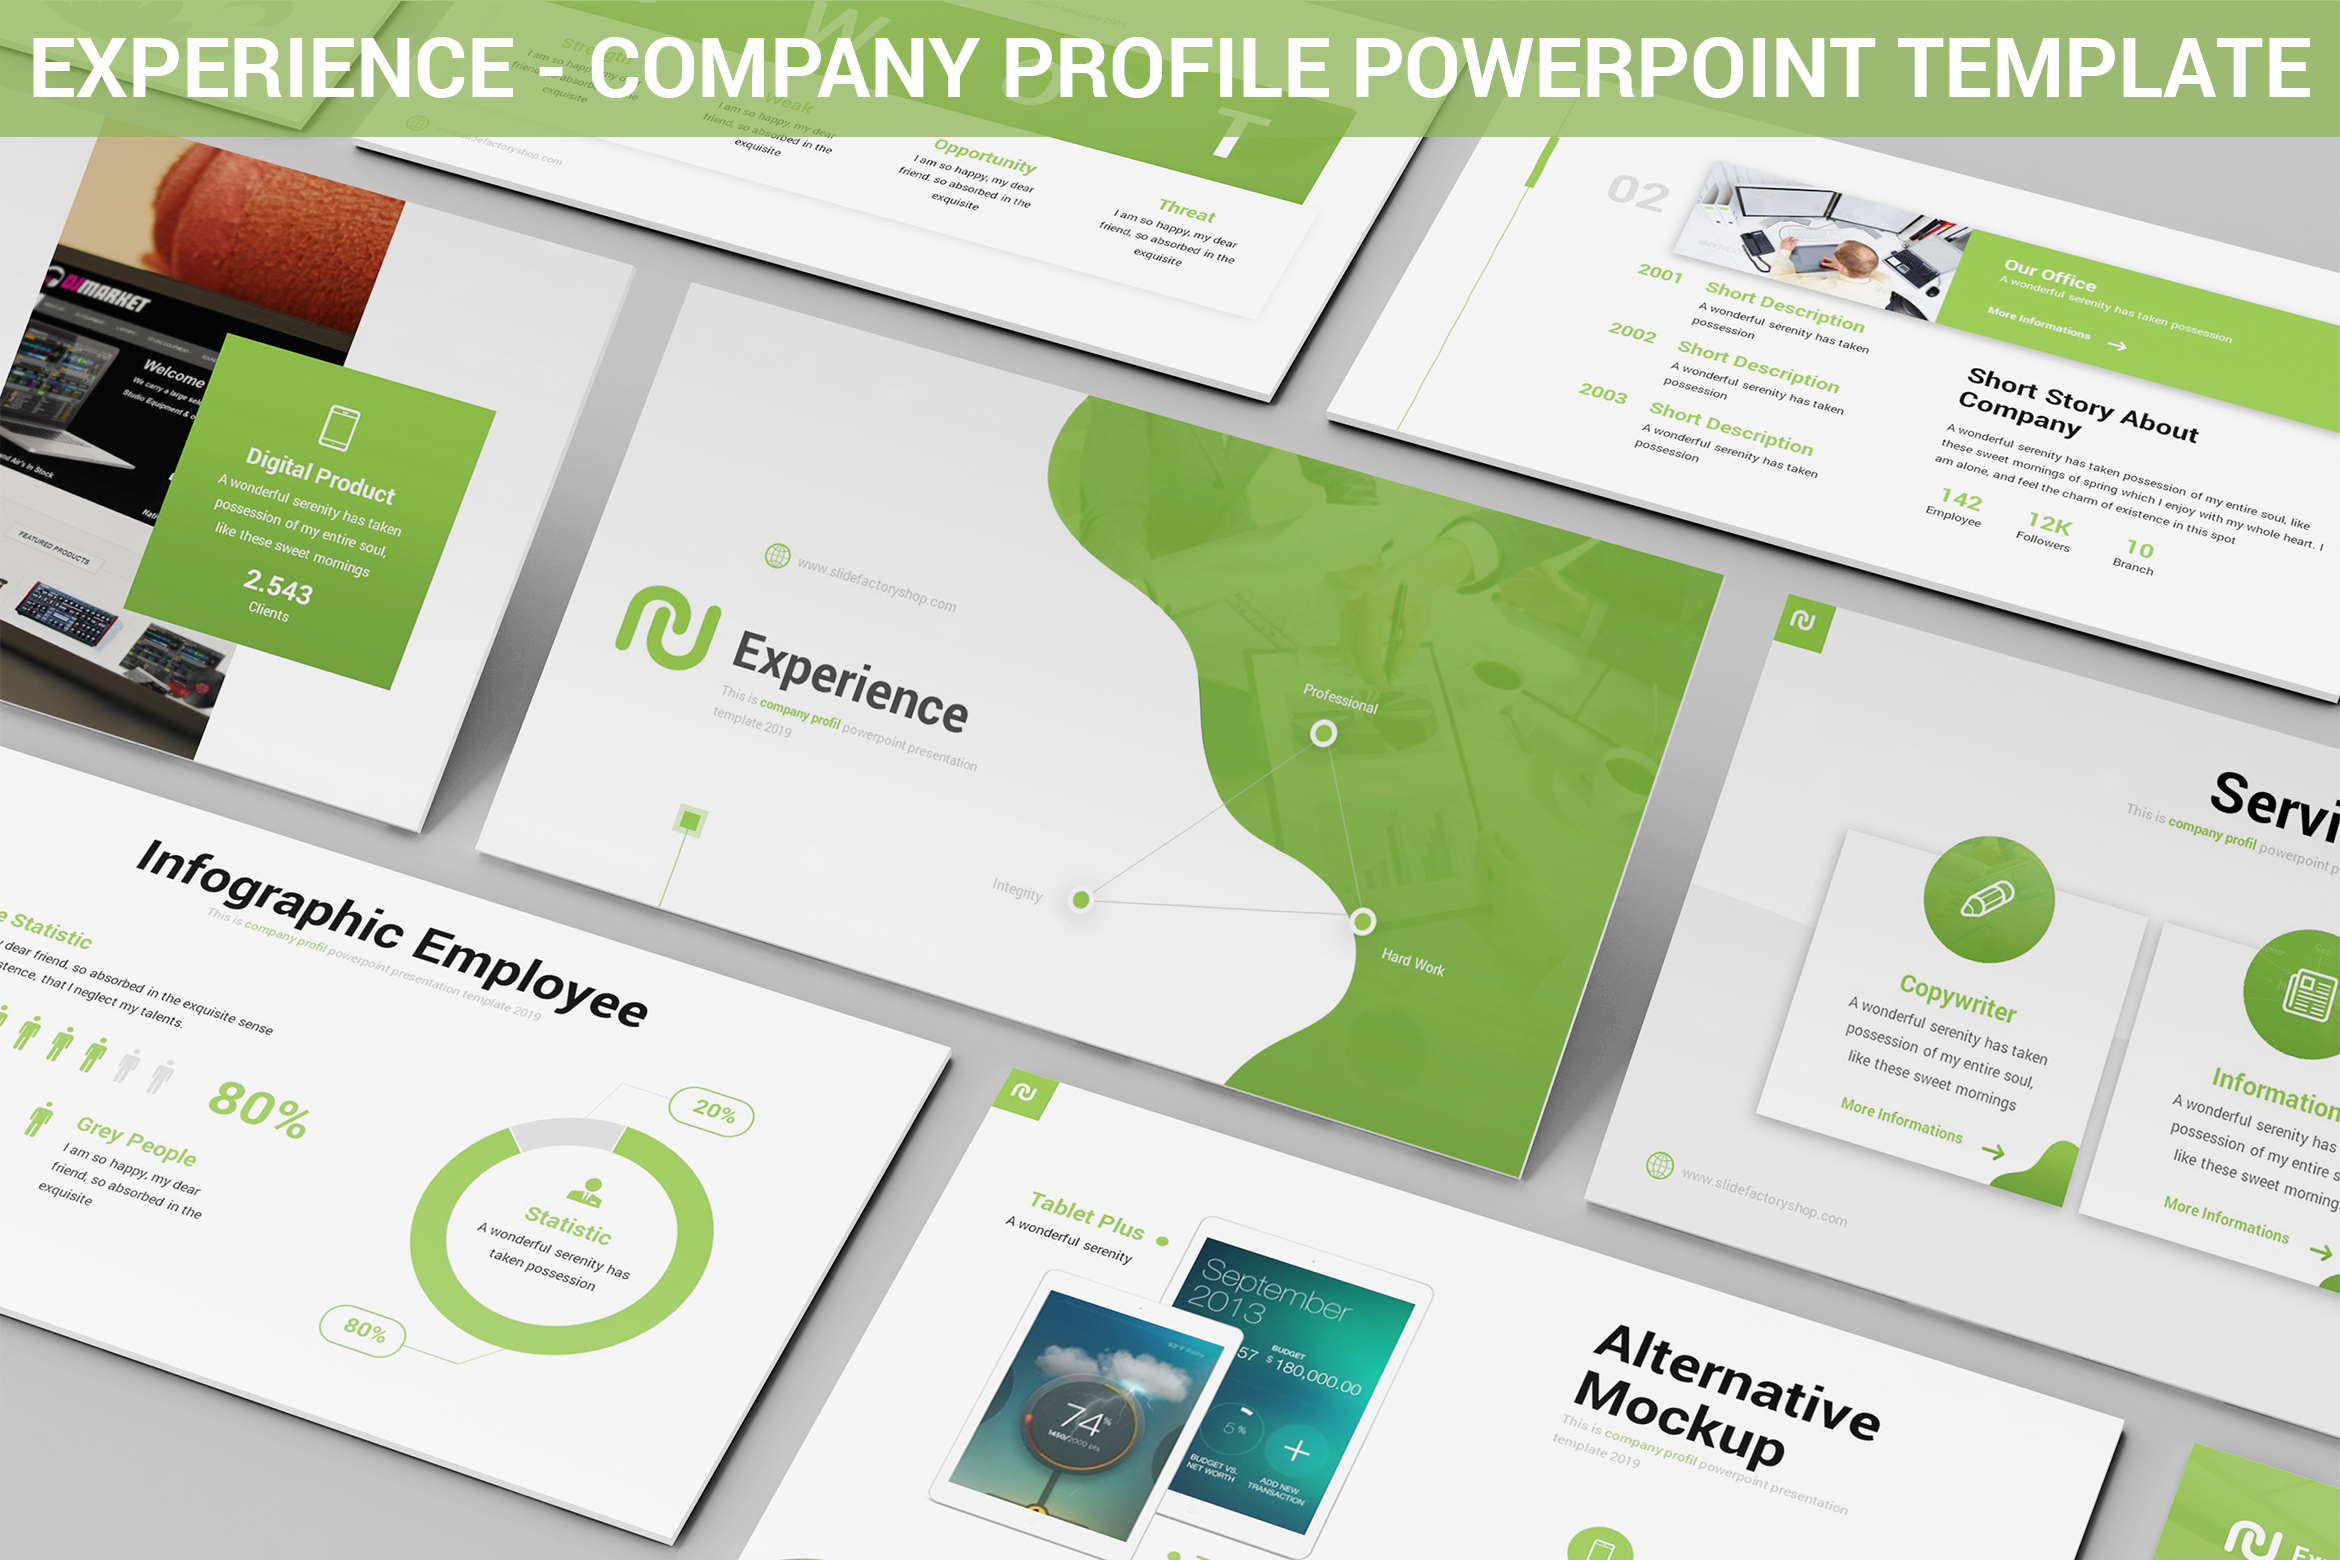 experience company profile powerpoint template. Black Bedroom Furniture Sets. Home Design Ideas